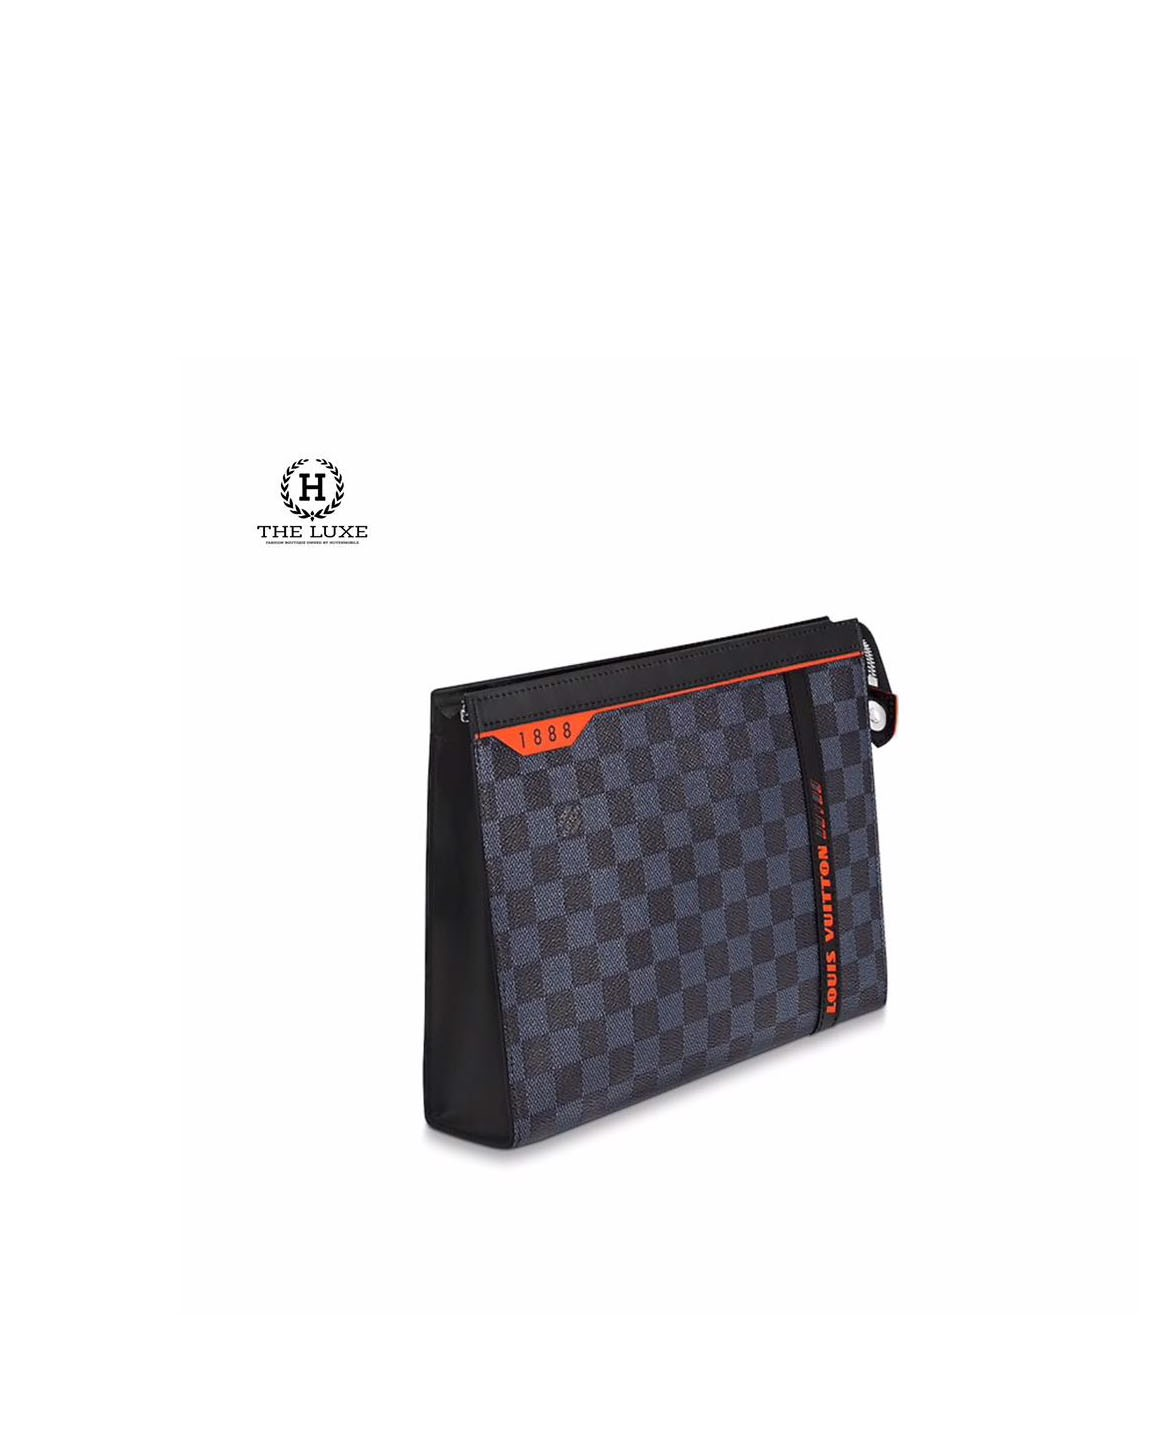 Pochette Louis Vuitton Race New season 2019